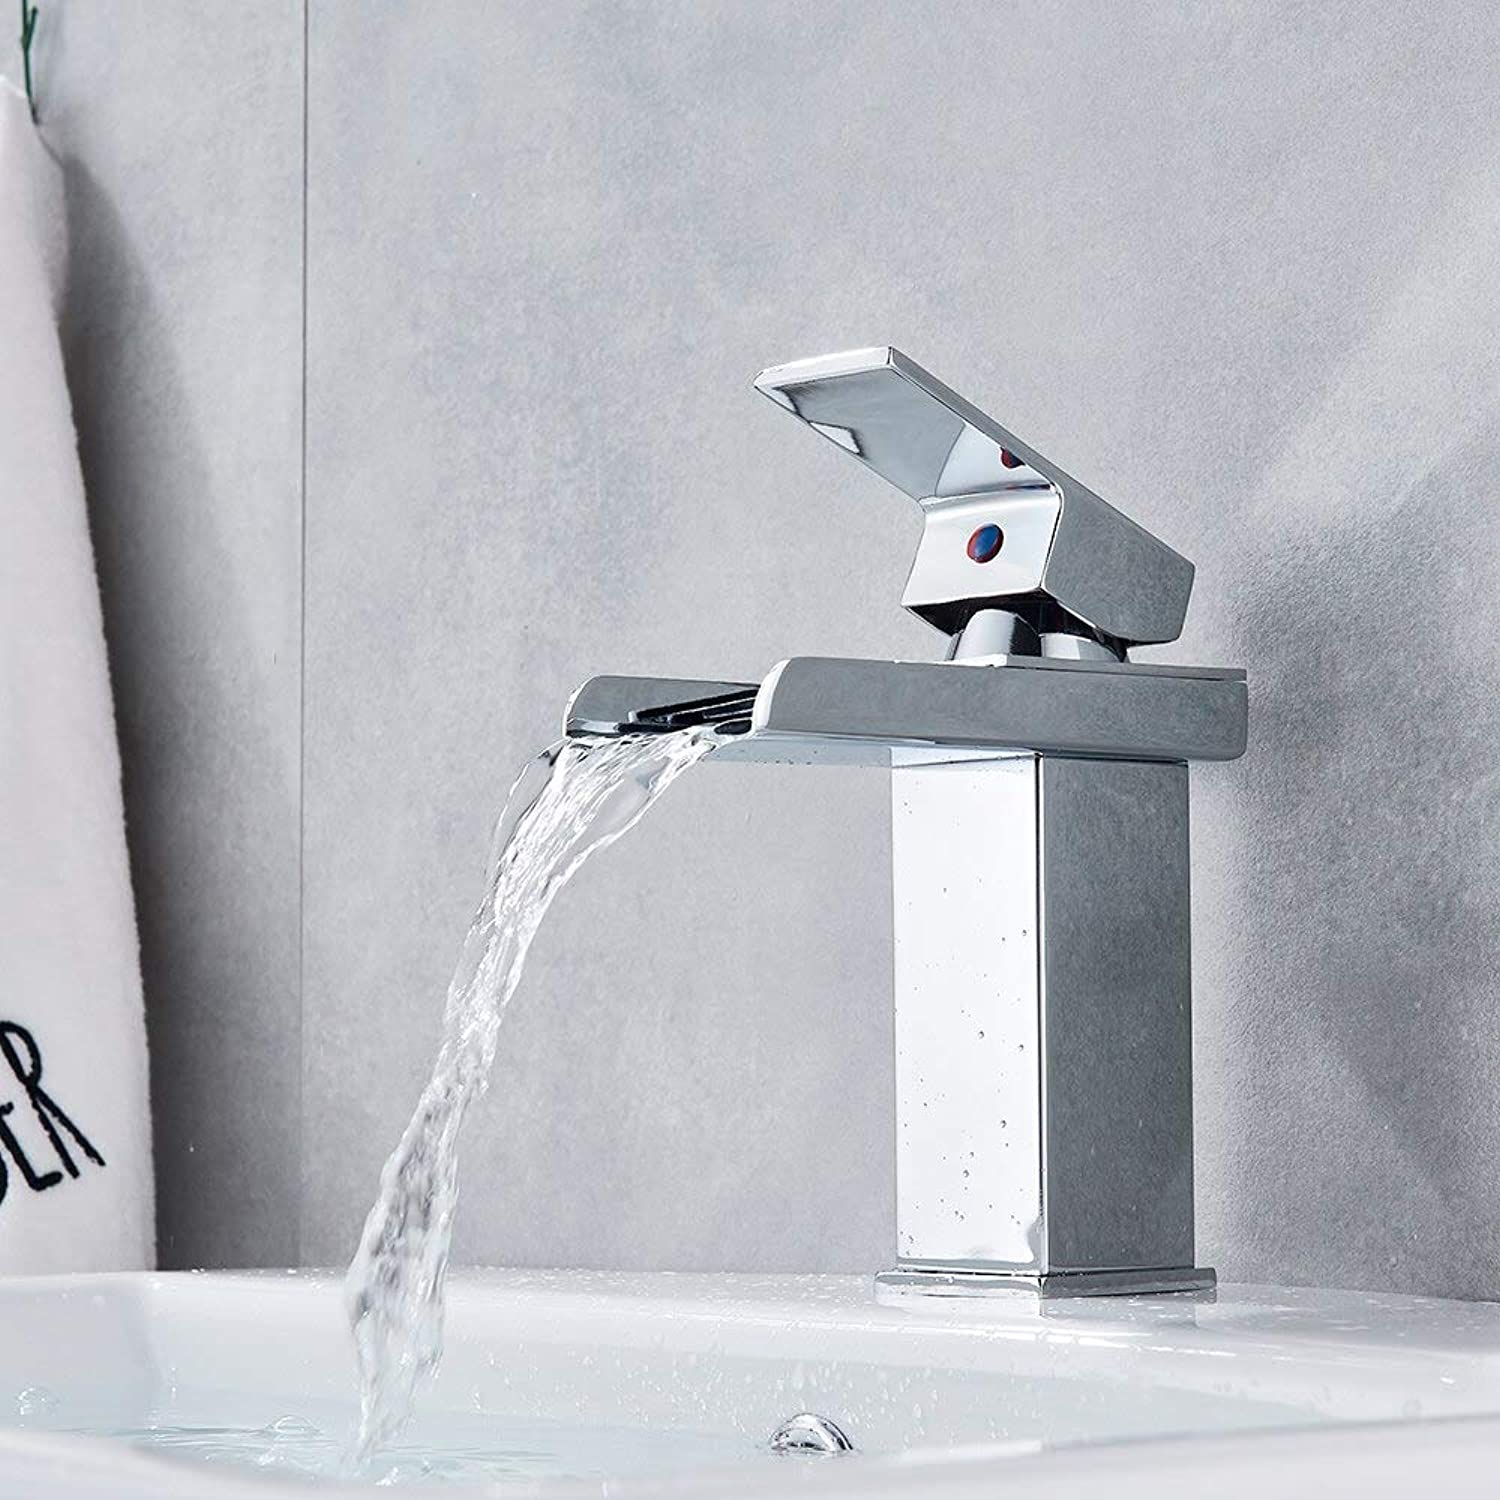 Waterfall Basin Faucet Chrome gold Brushed Nickel orb Polished Deck Mount Bath Sink Faucet Hot Cold Mixer Tap